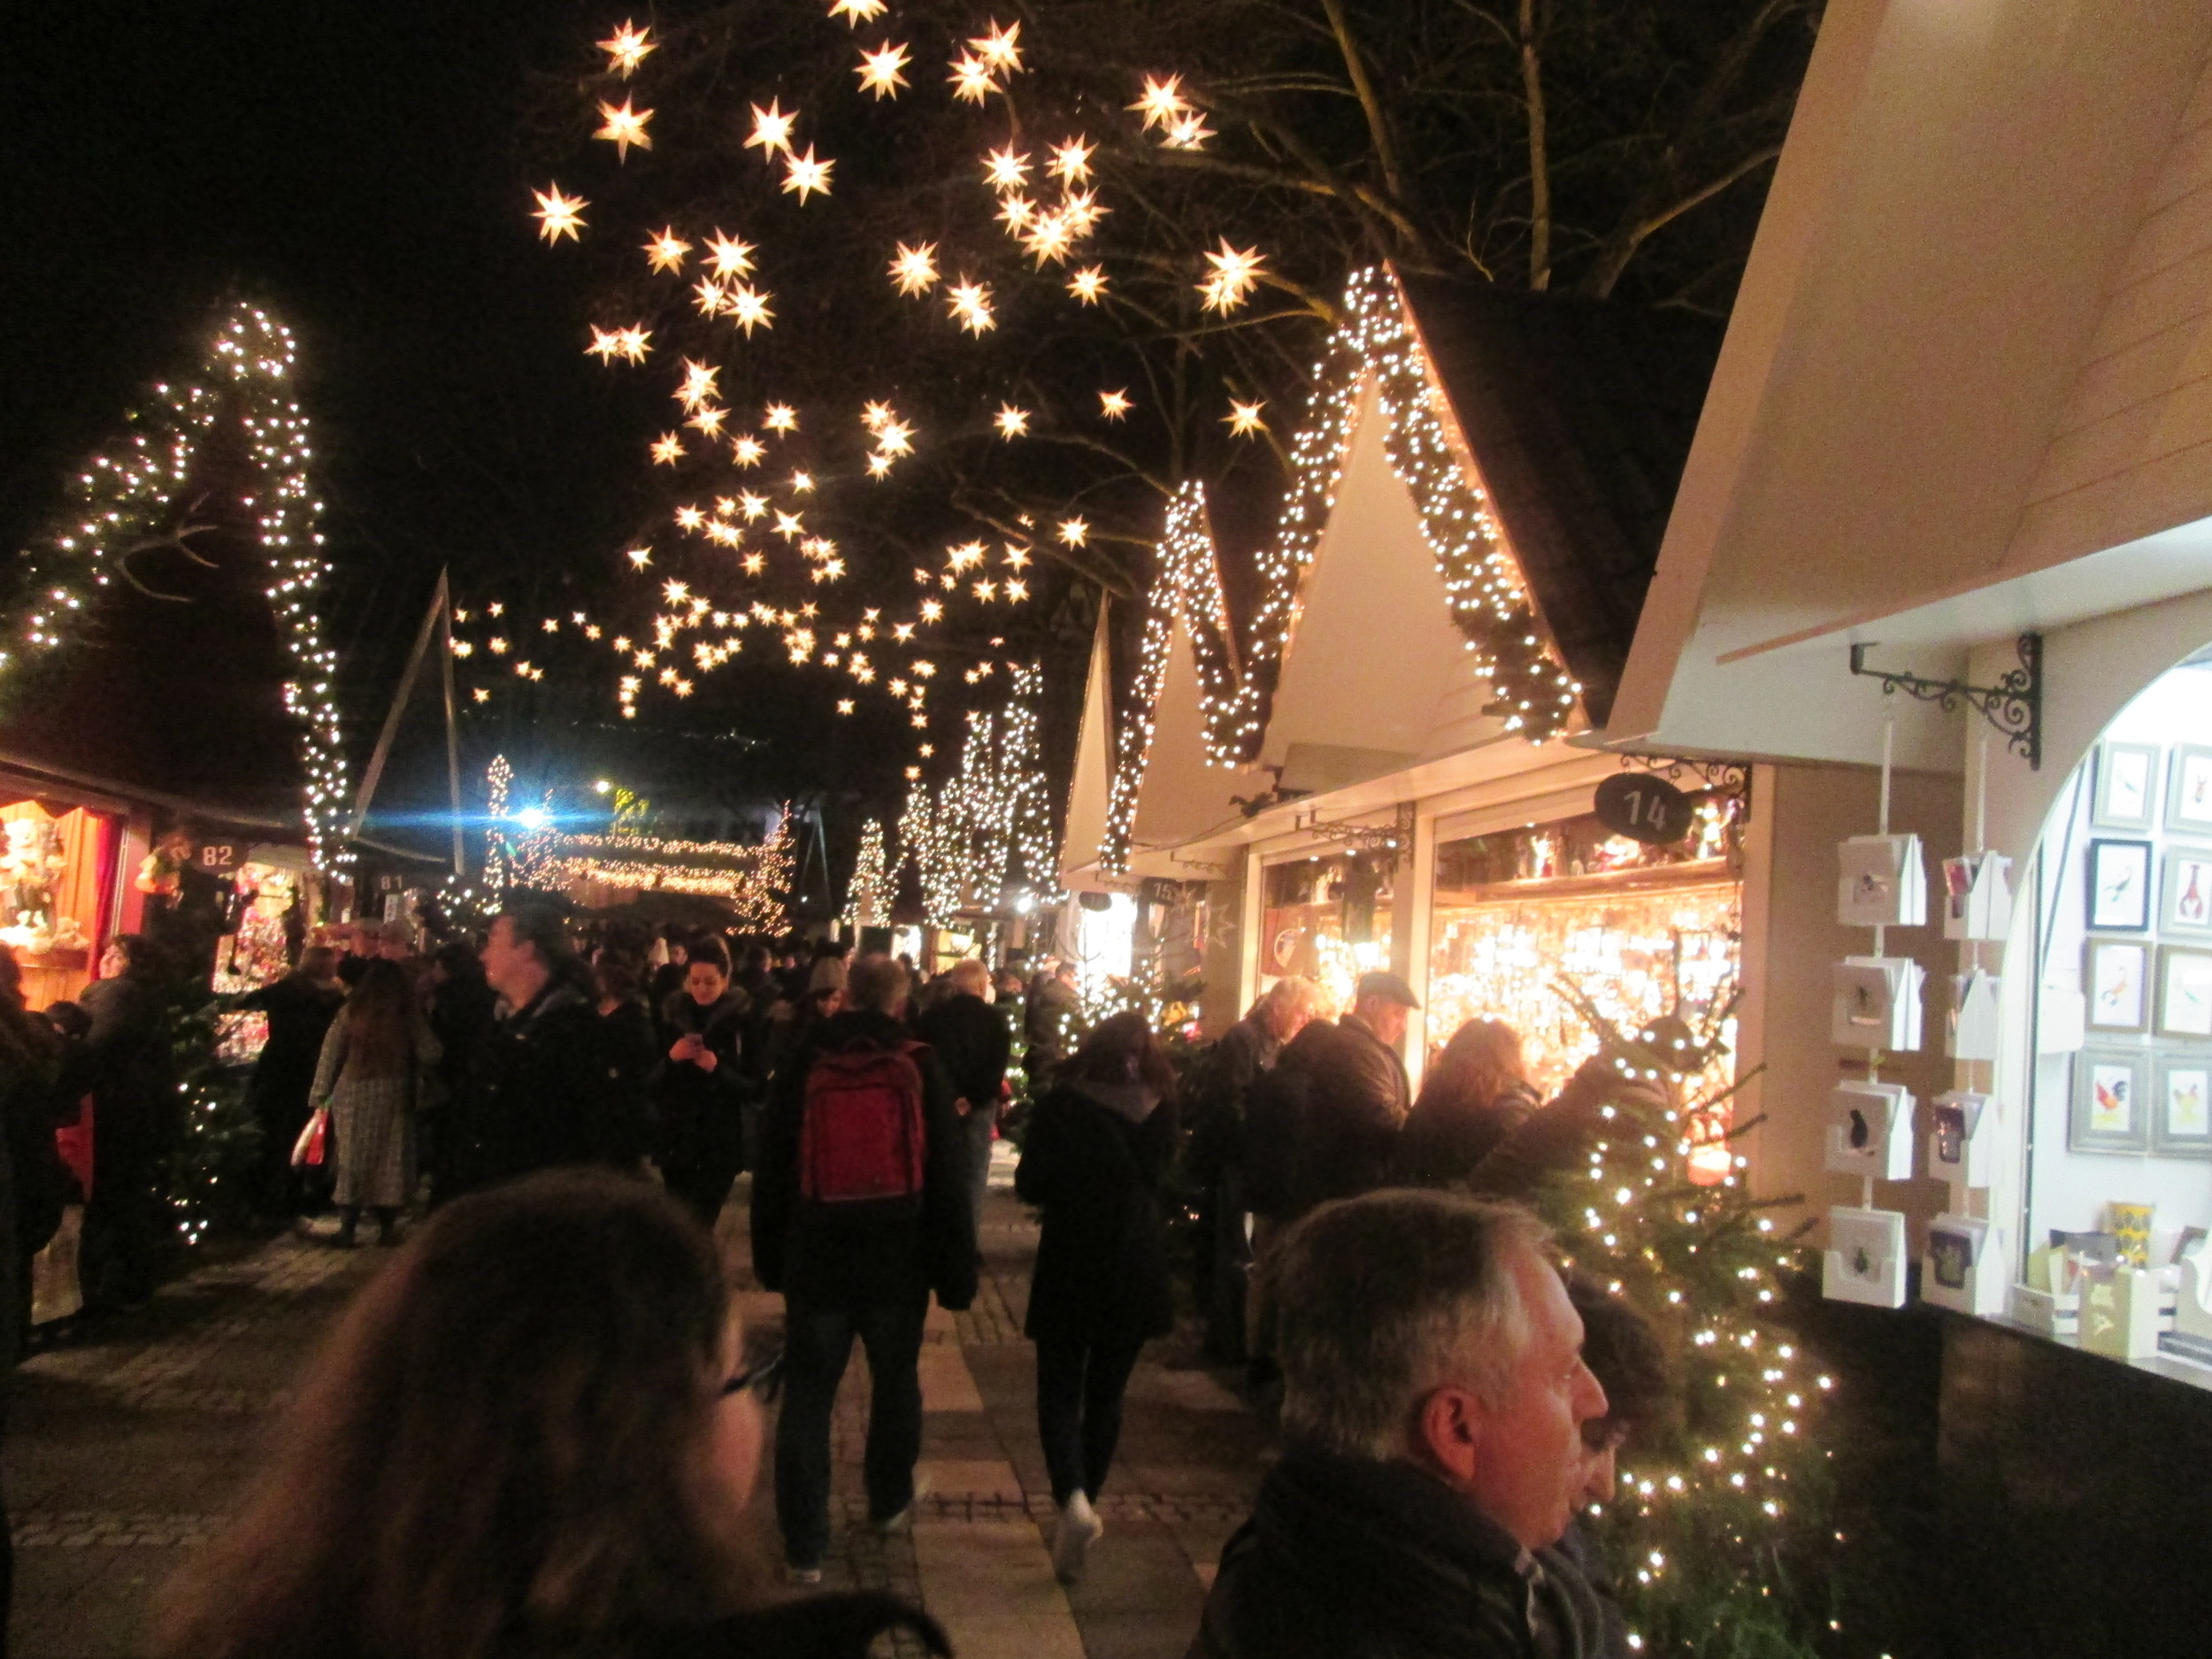 Stands in the Weihnachtsmarkt at Neumarkt in Köln with illuminated stars hung from trees overhead